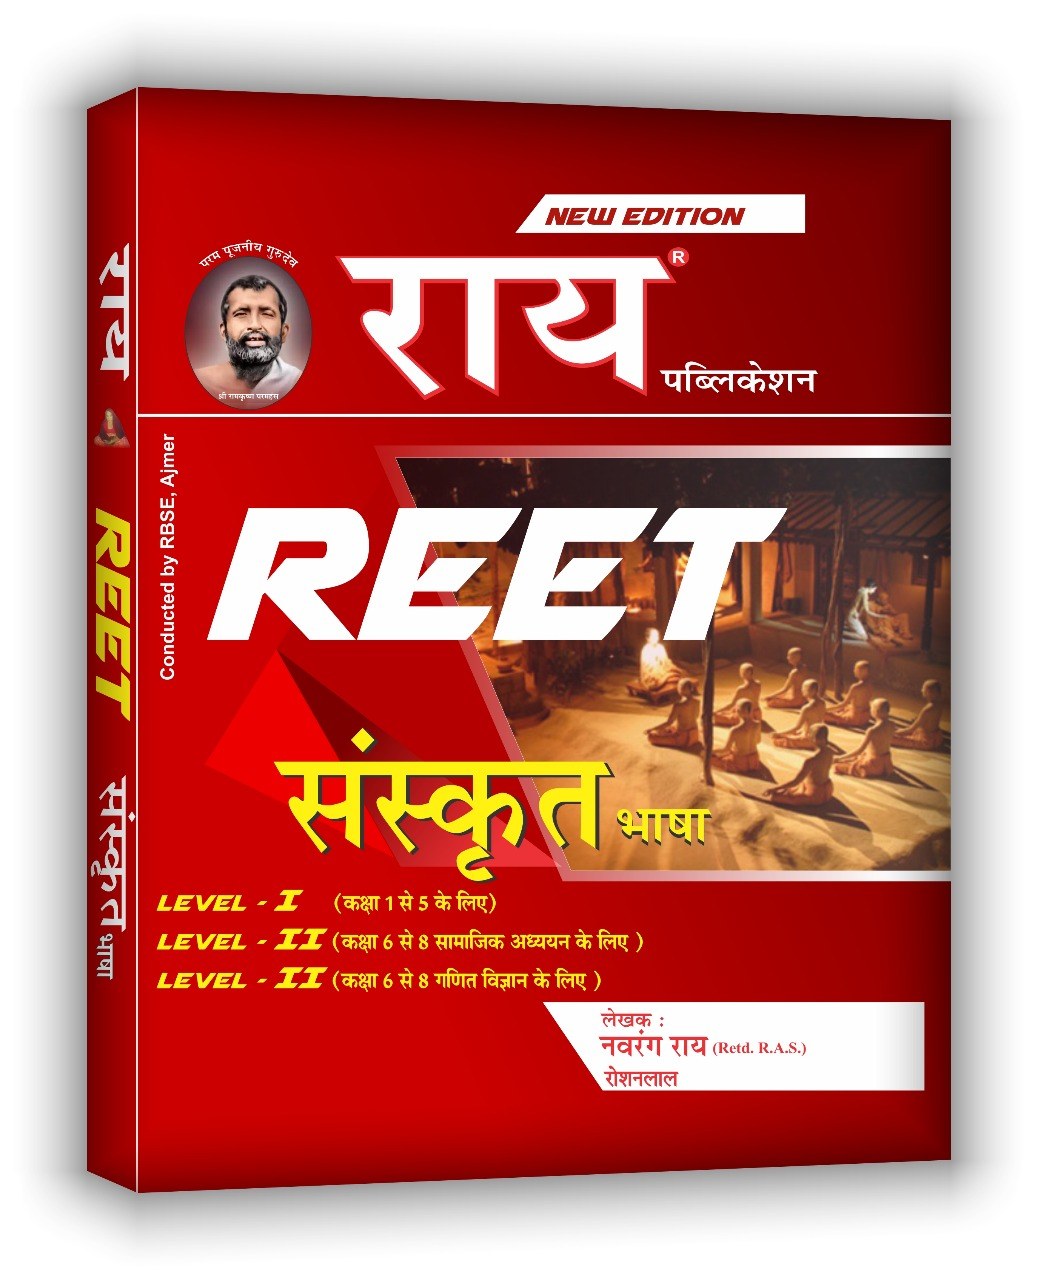 REET Sanskrit Language with Method for Level 1(1-5) and Level 2(6-8) ( REET Bhasha 1 avem Bhasha 2 Sanskrit) (REET 2020 )